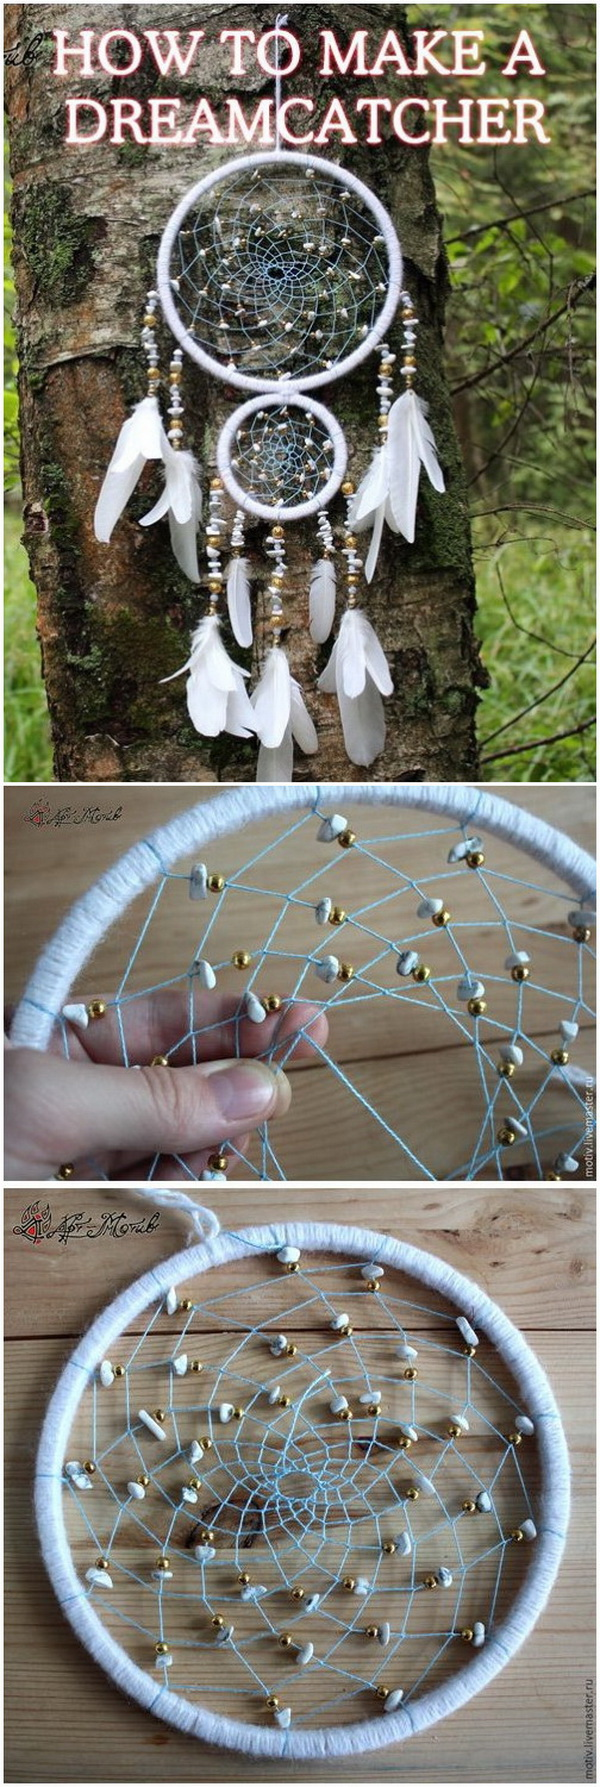 This one is made with beads and white feather! It would totally work both as a spiritual dream catcher and a modern-decor.